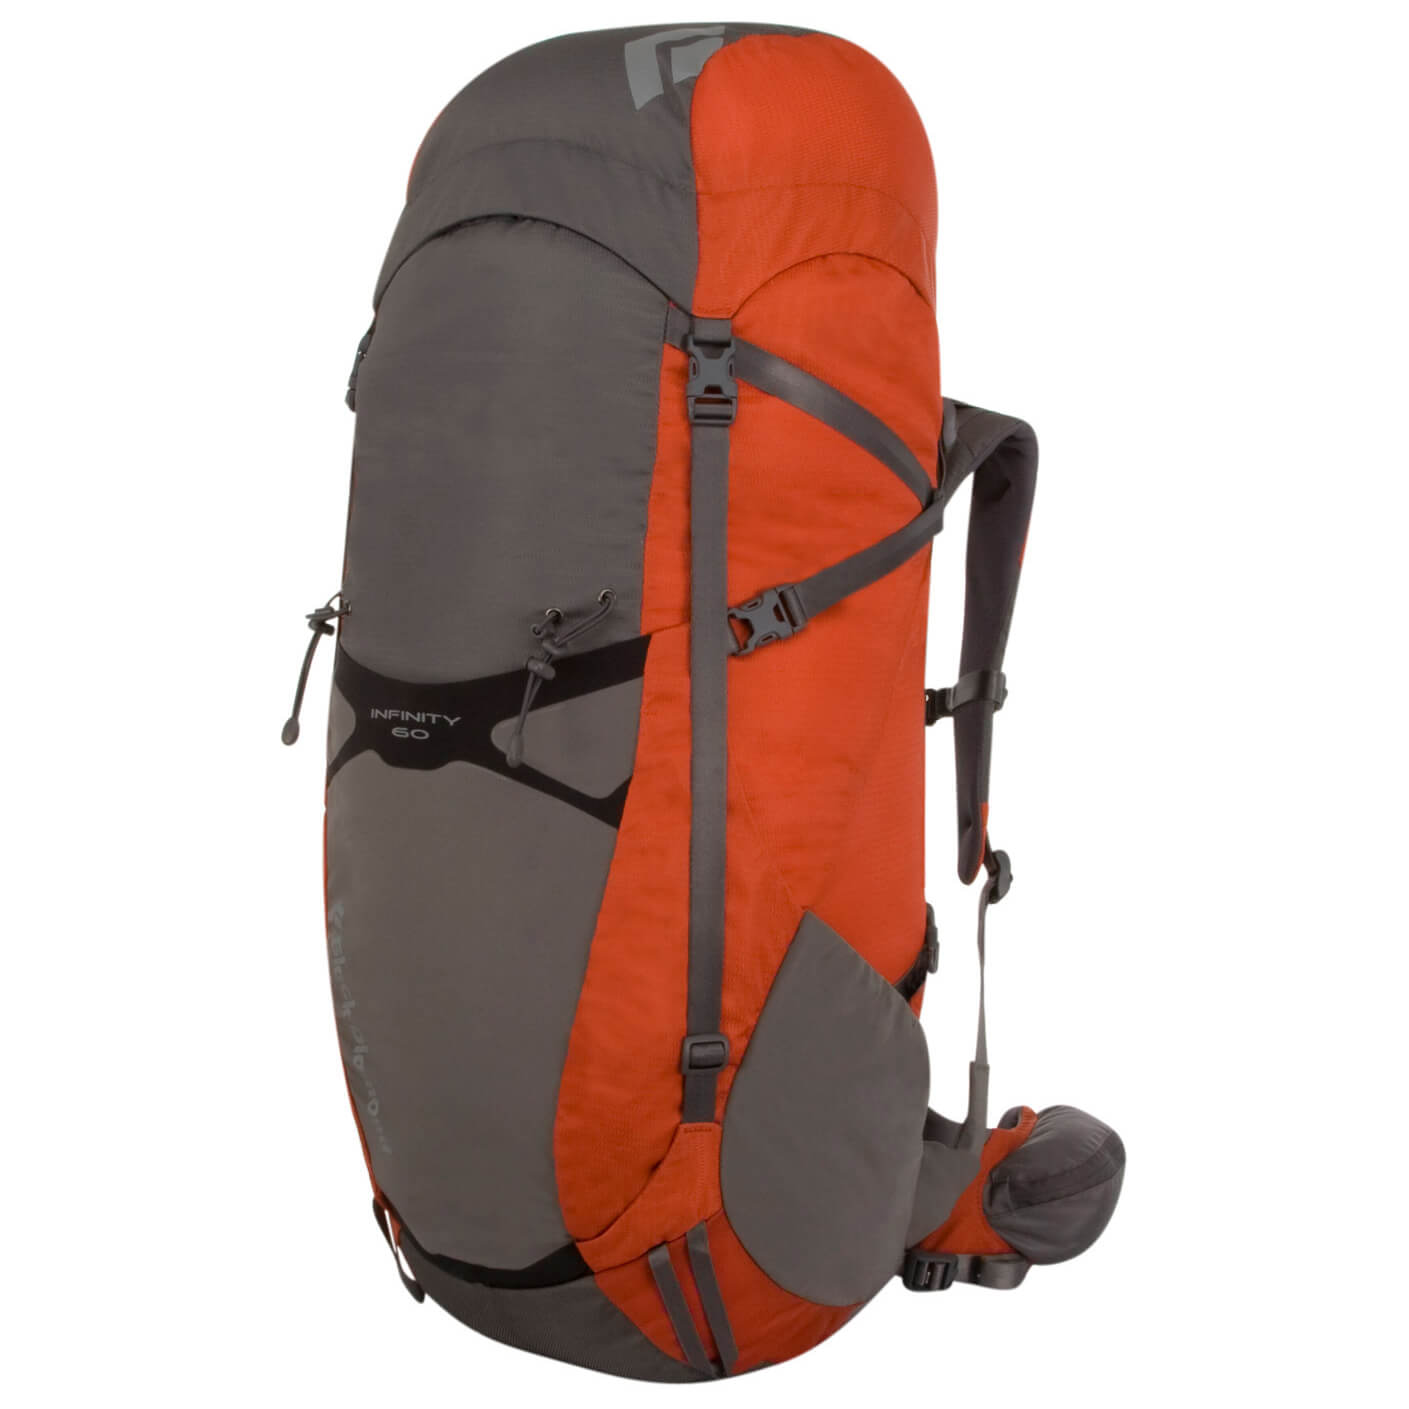 backpack origin backpacks infinity hex khki products